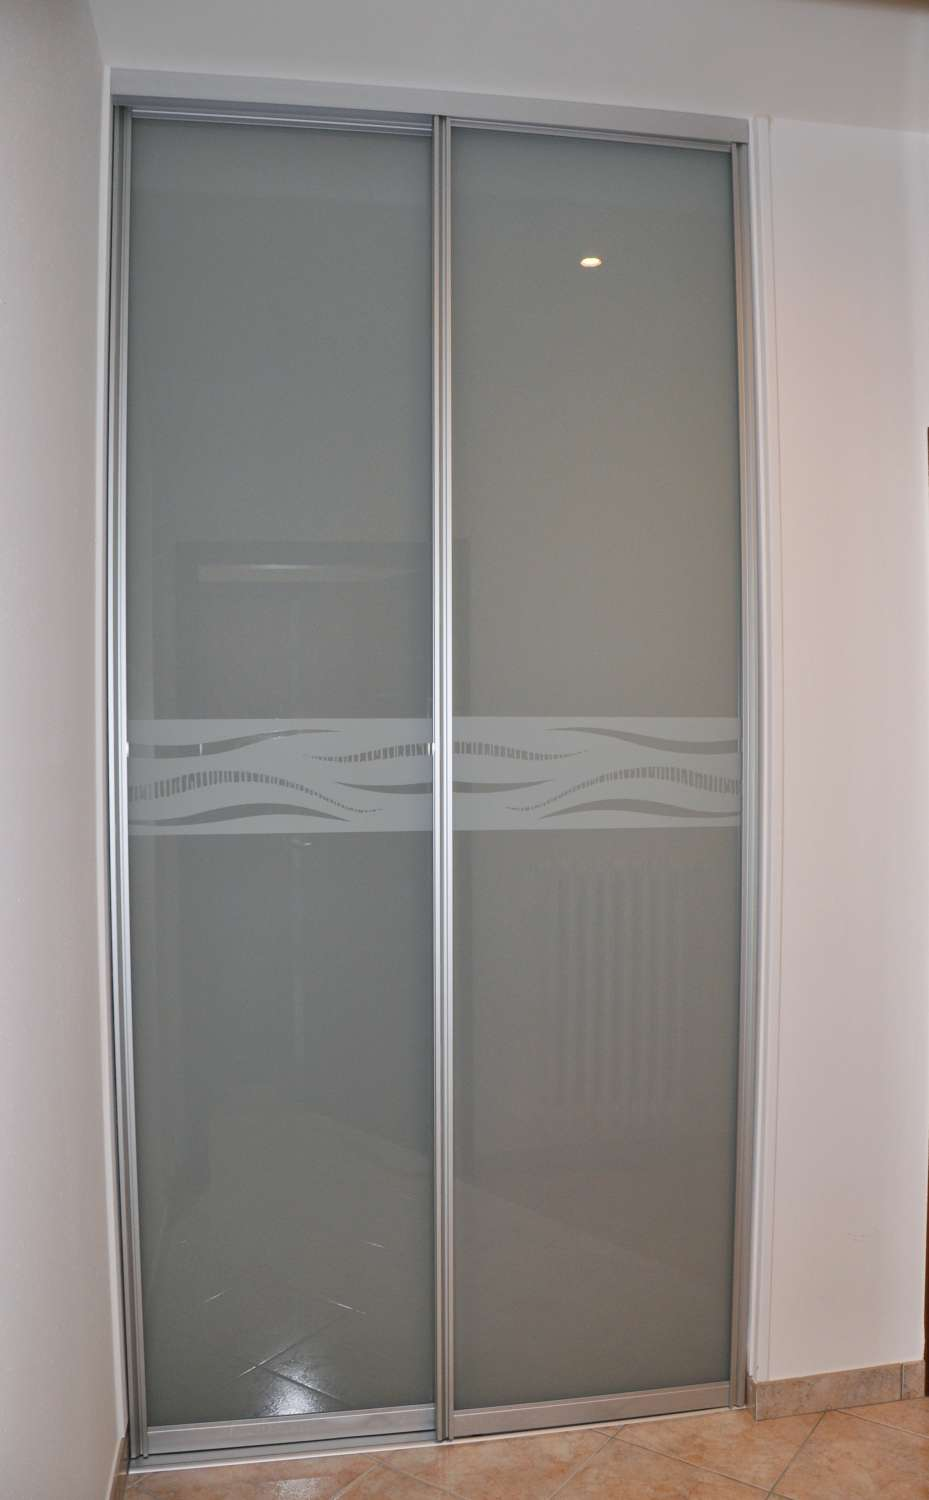 Porta Scorrevole 3 Ante Sovrapposte.Mazzoli Glass Doors Various Solutions For Glass Doors And